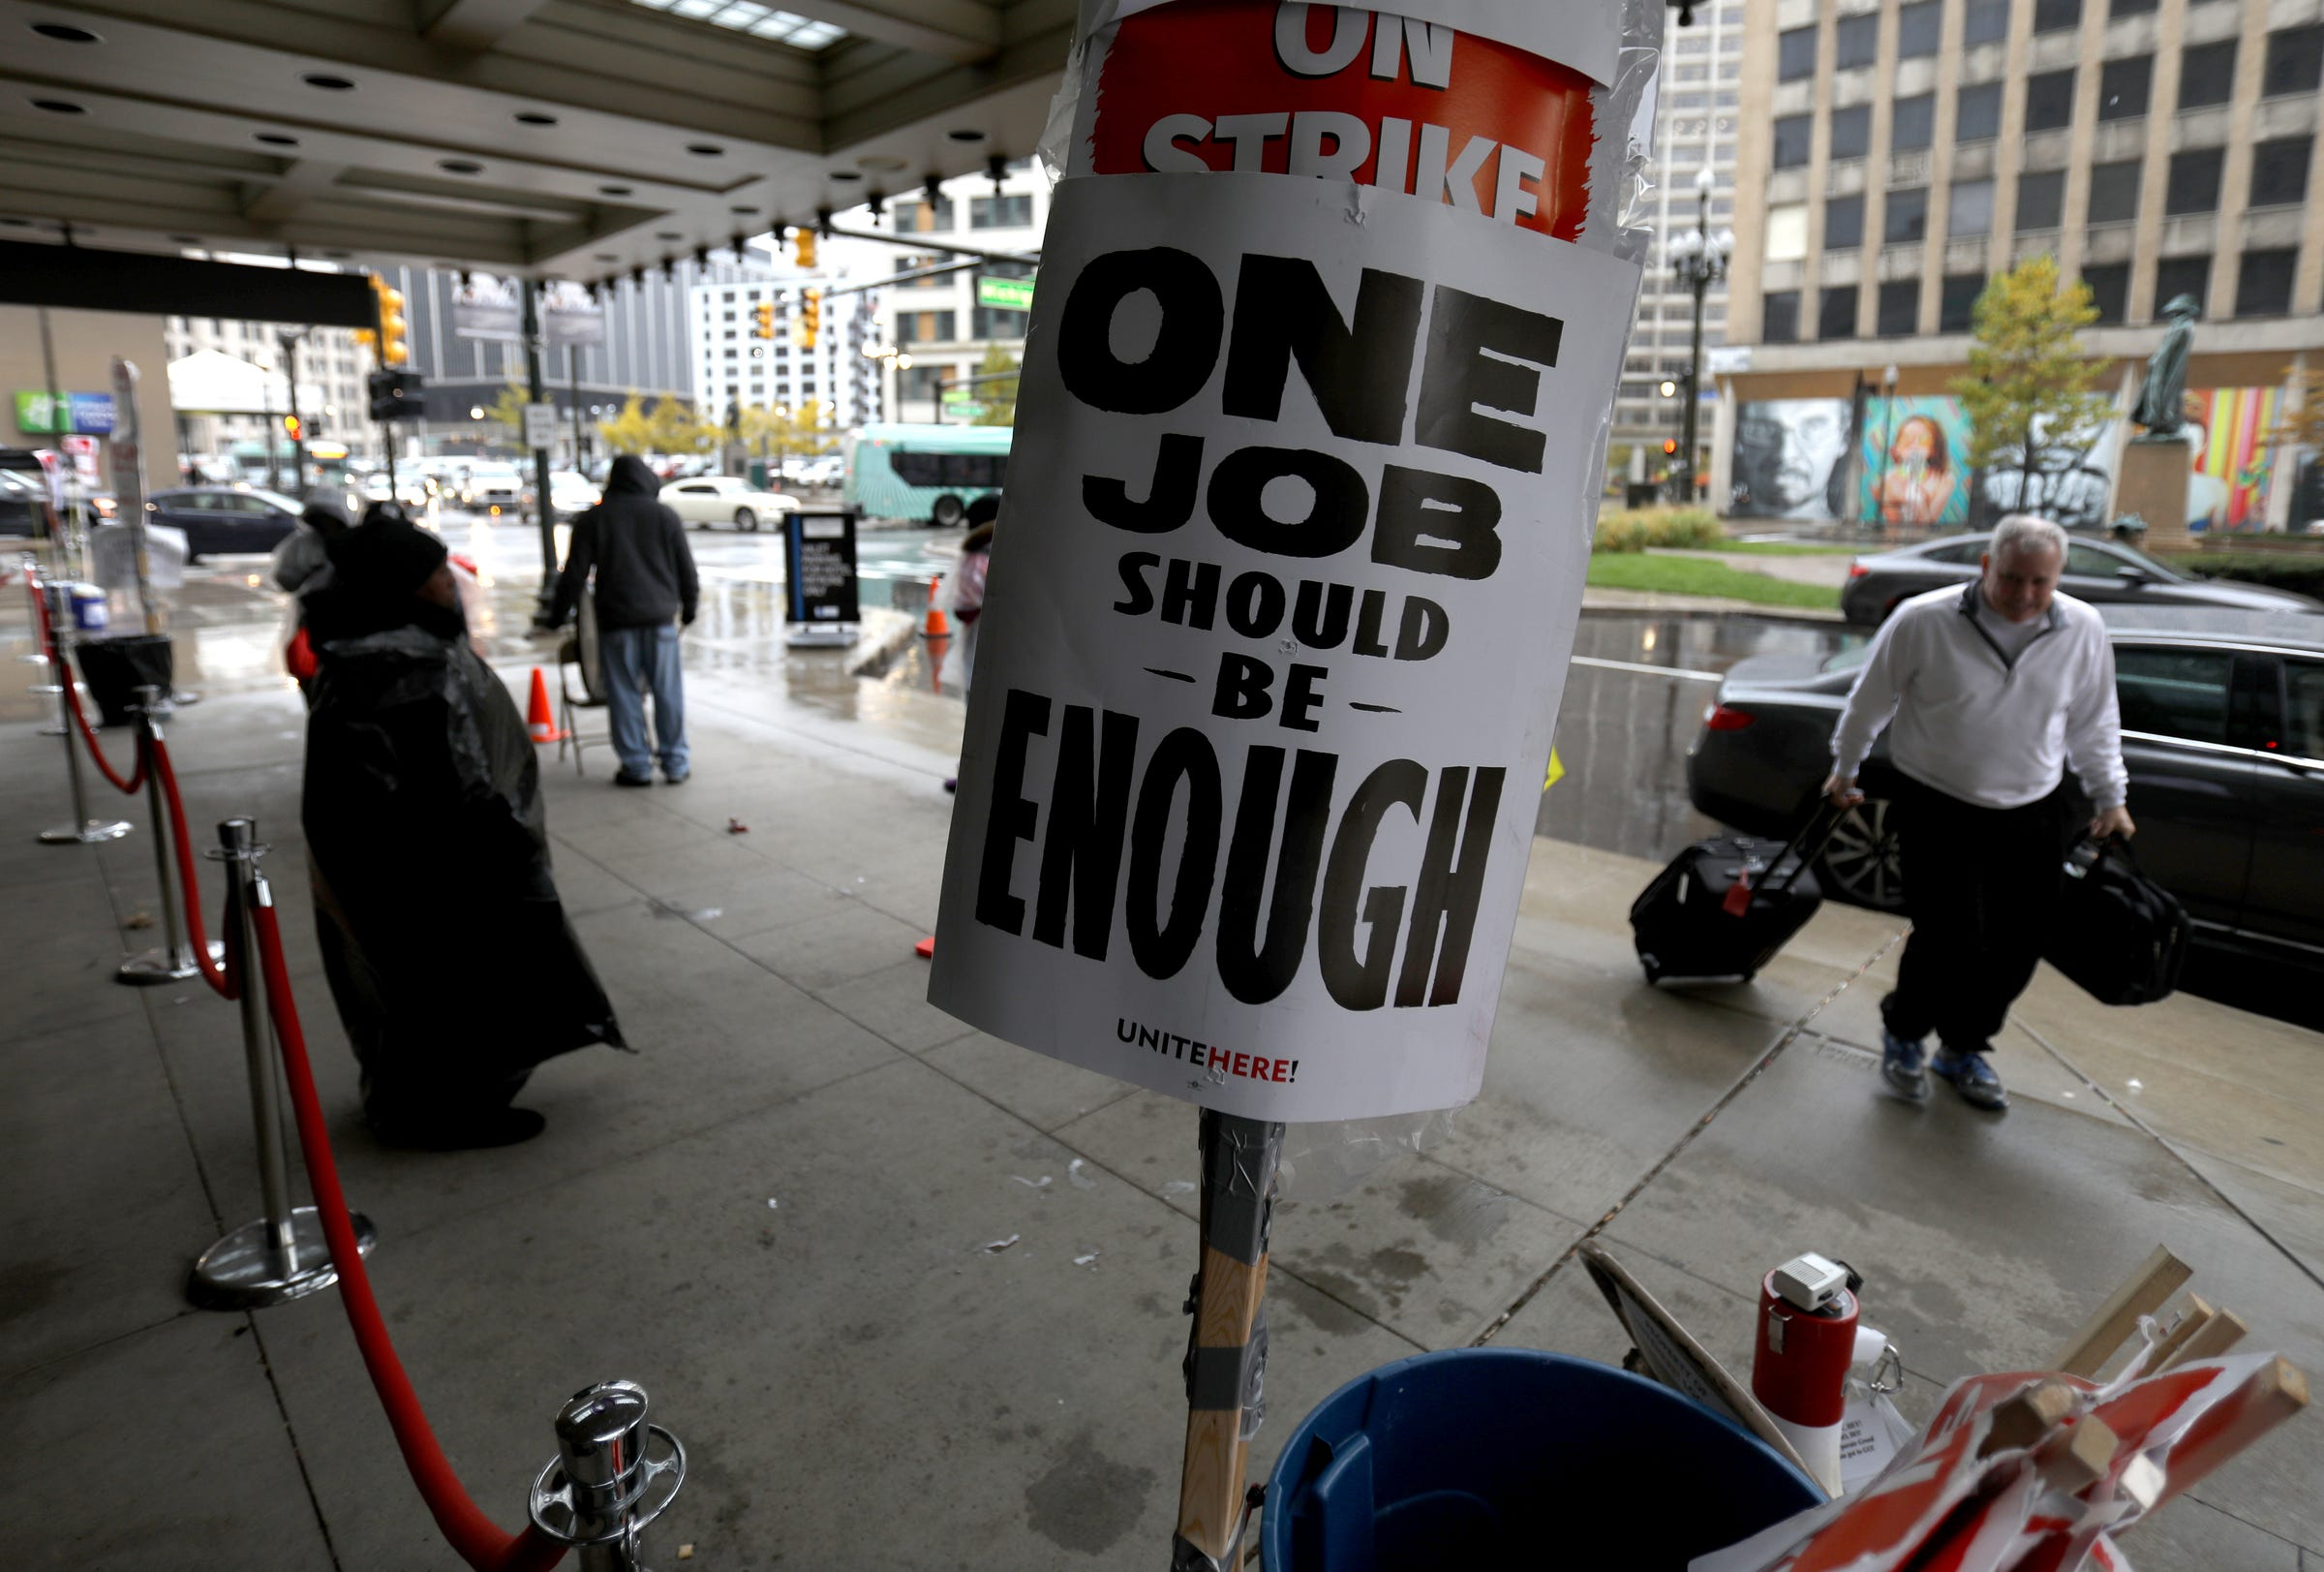 Over 130 workers in unions in Detroit have been on strike in front of the Westin Book Cadillac for the past month. Under the rain on Thursday, November 1, 2018, a handful of them march in front of the main entrance to the sound of a beating drum.